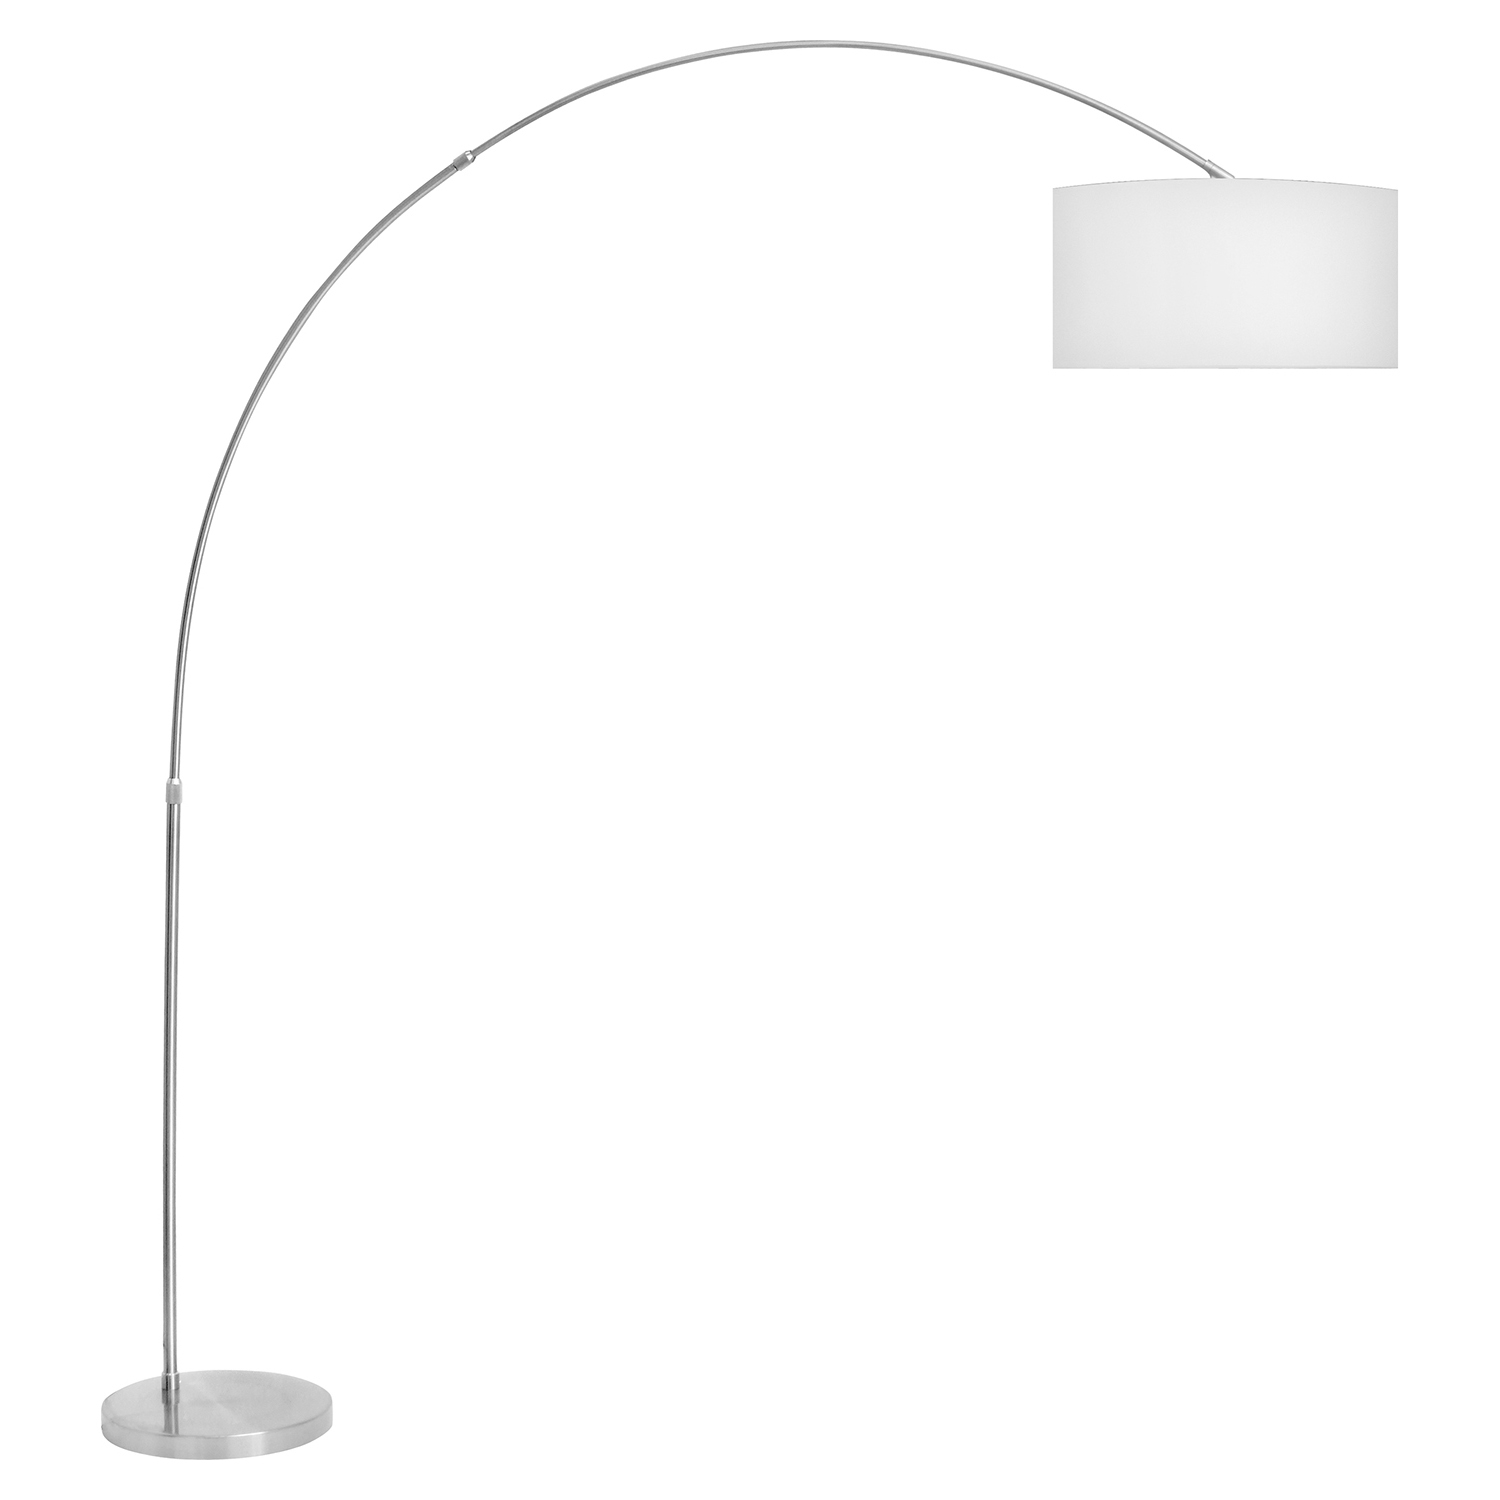 Salon Floor Lamp - White